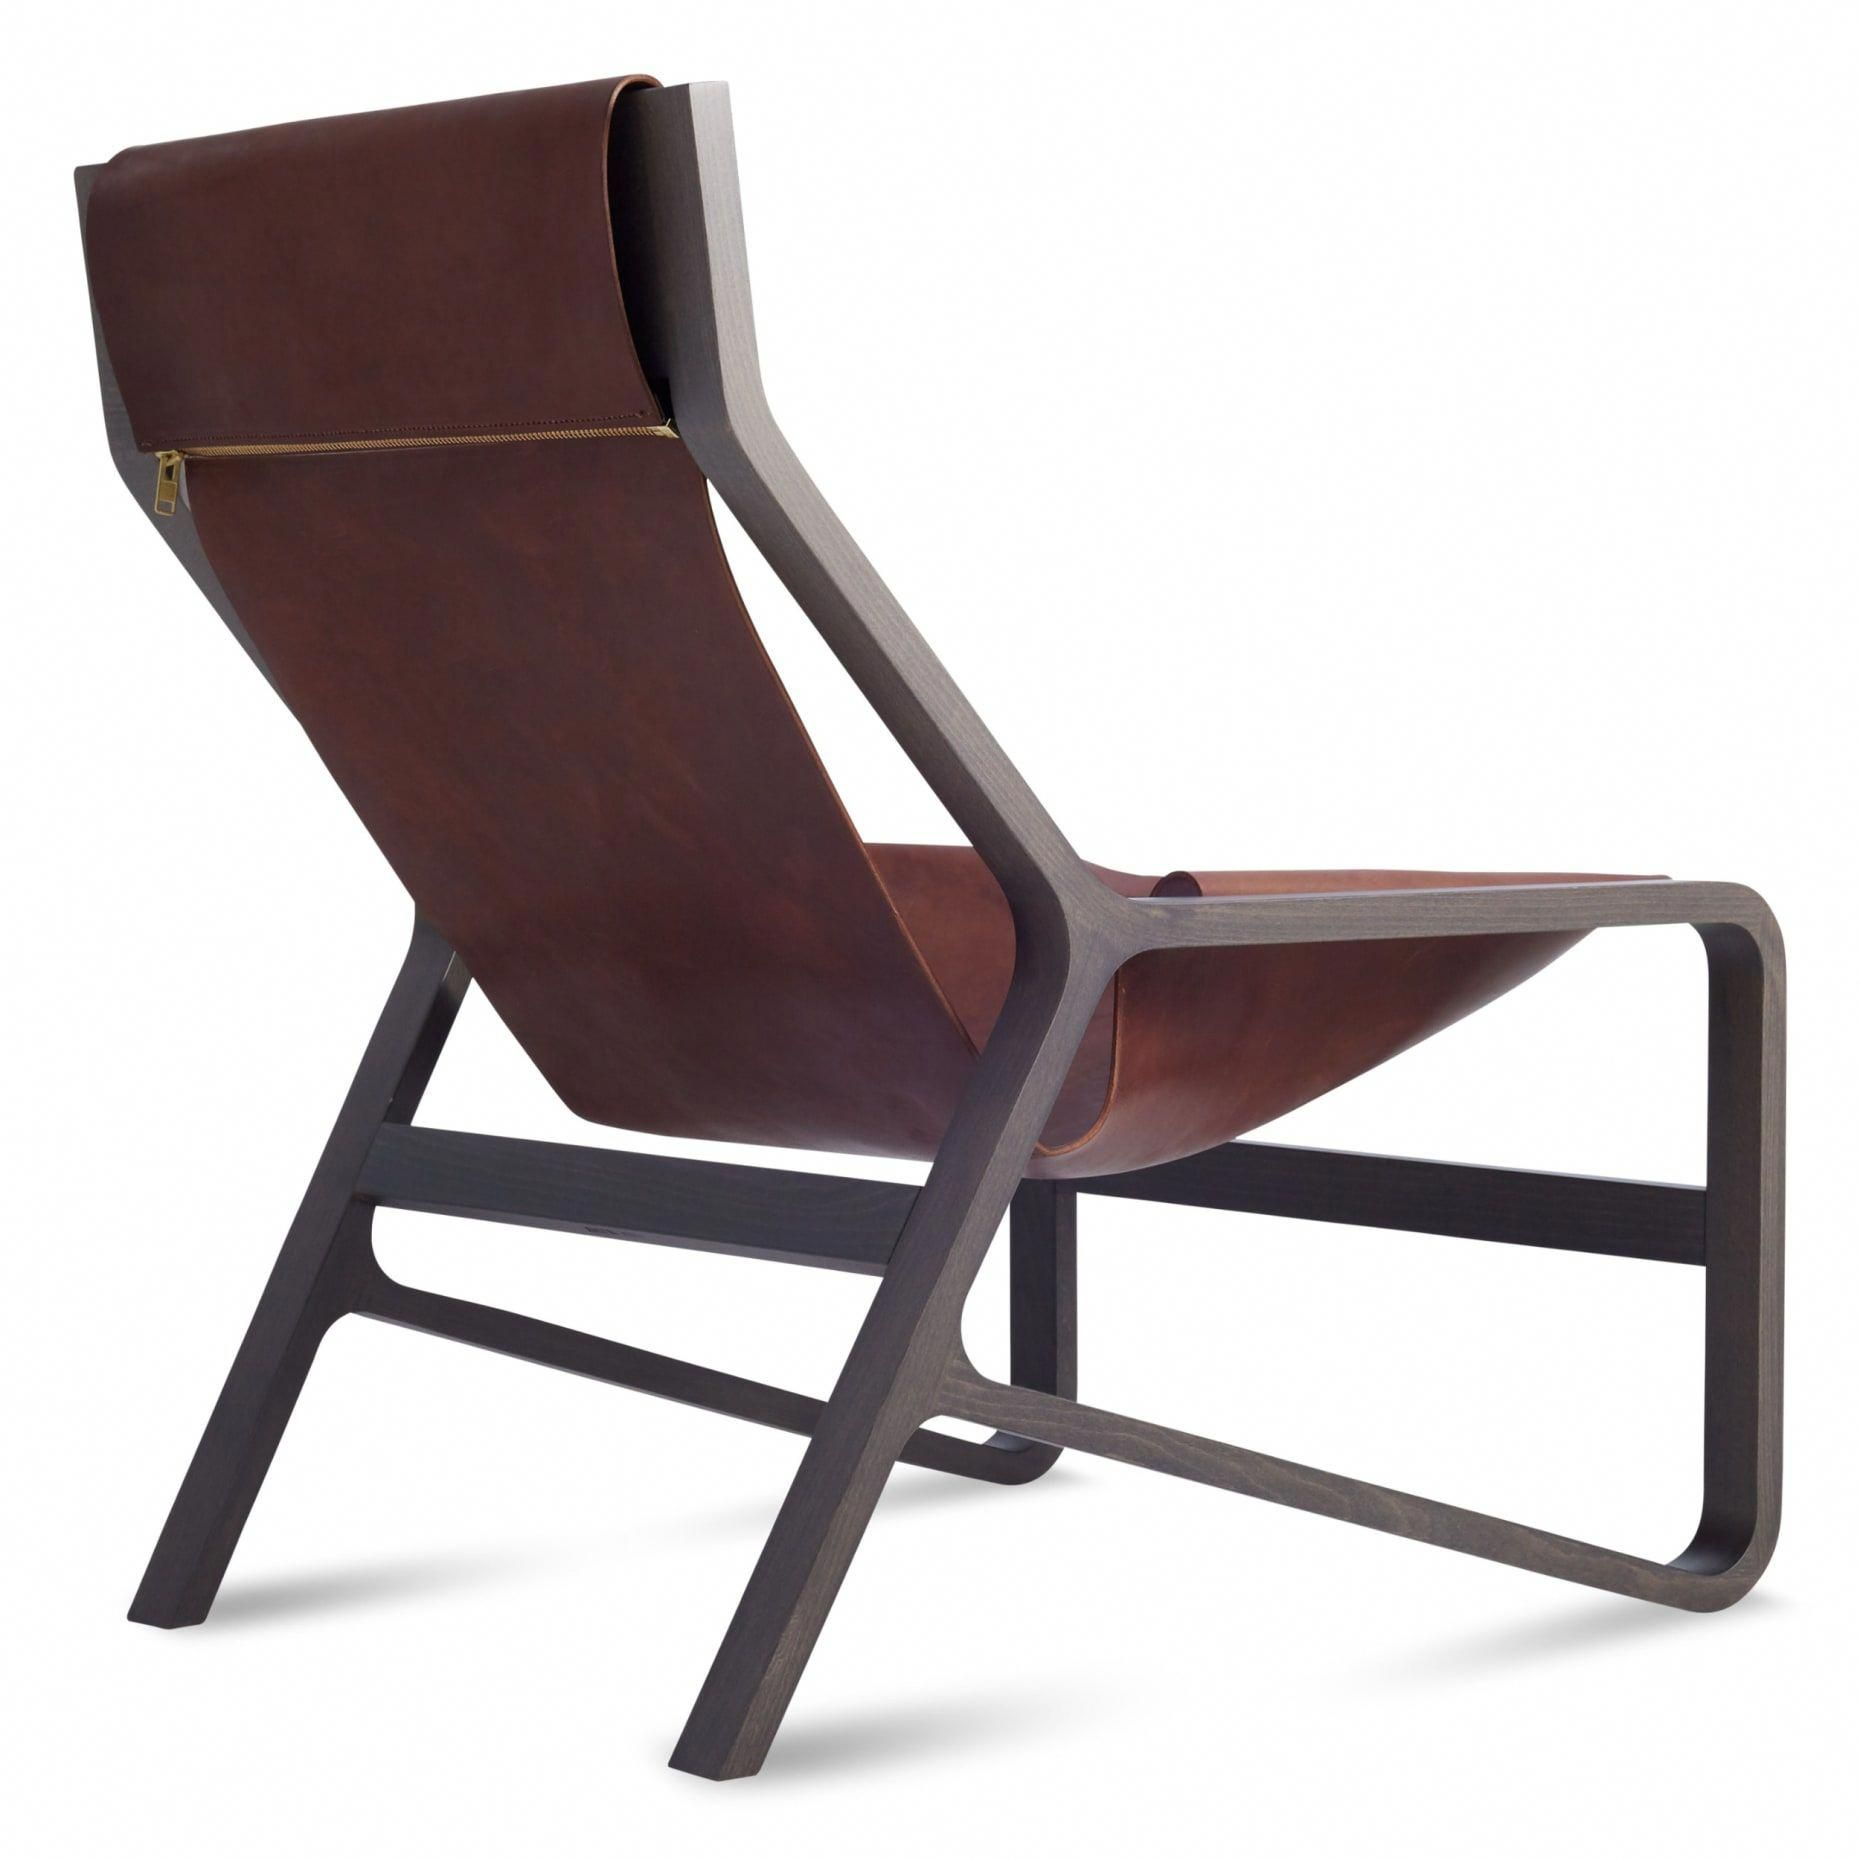 Toro Sling Lounge Chair Leather Sling Chair Blu Dot 1299 Chairs Woven Dining Chairs Modern Lounge Chairs Lounge Chair Outdoor